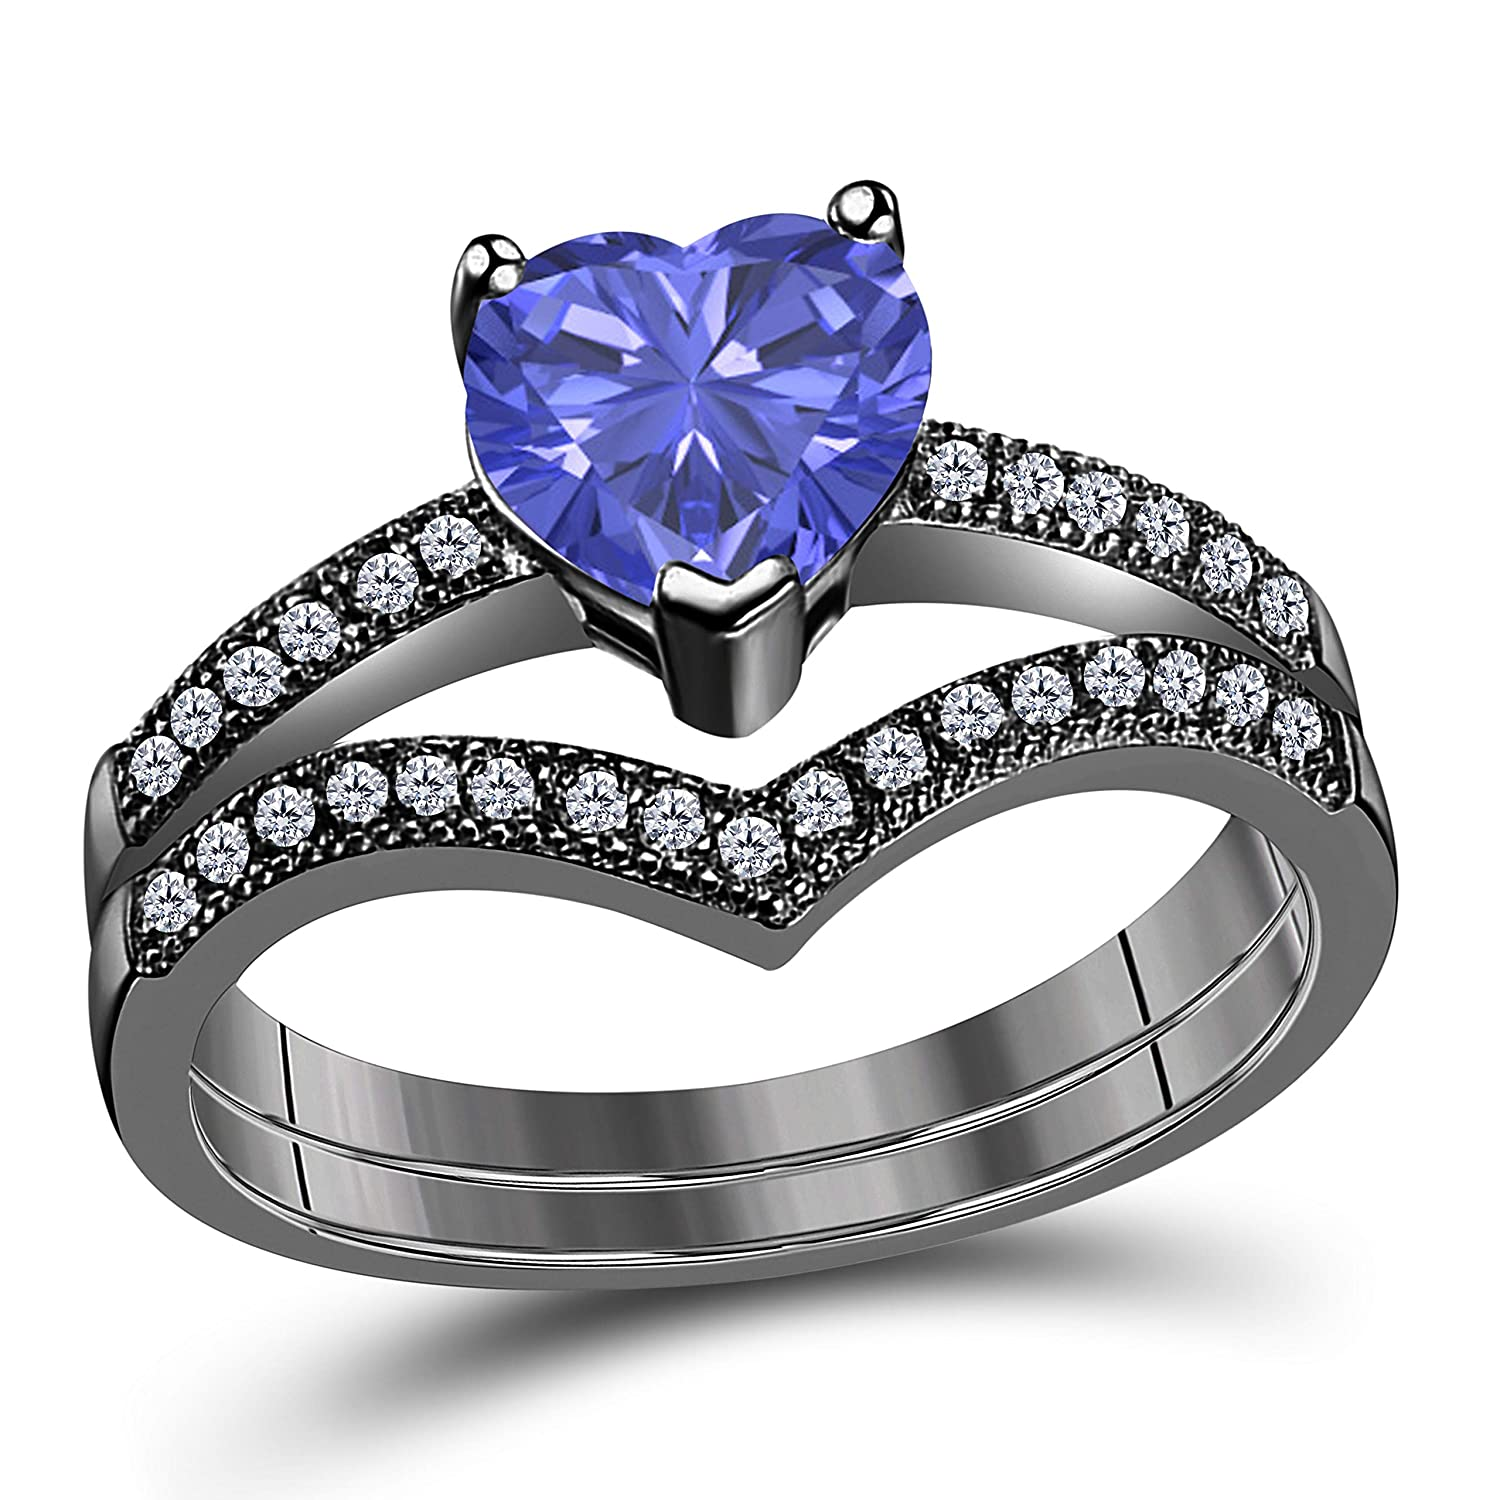 Amazon Ds Jewels 14k Gold Plated Alloy Heart Cut 150 Tcw Cz Tanzanite Cubic Zirconia Curved Wedding Band Engagement Bridal Ring Set Size 4 To 11: Cubic Zirconia Curved Wedding Band At Reisefeber.org